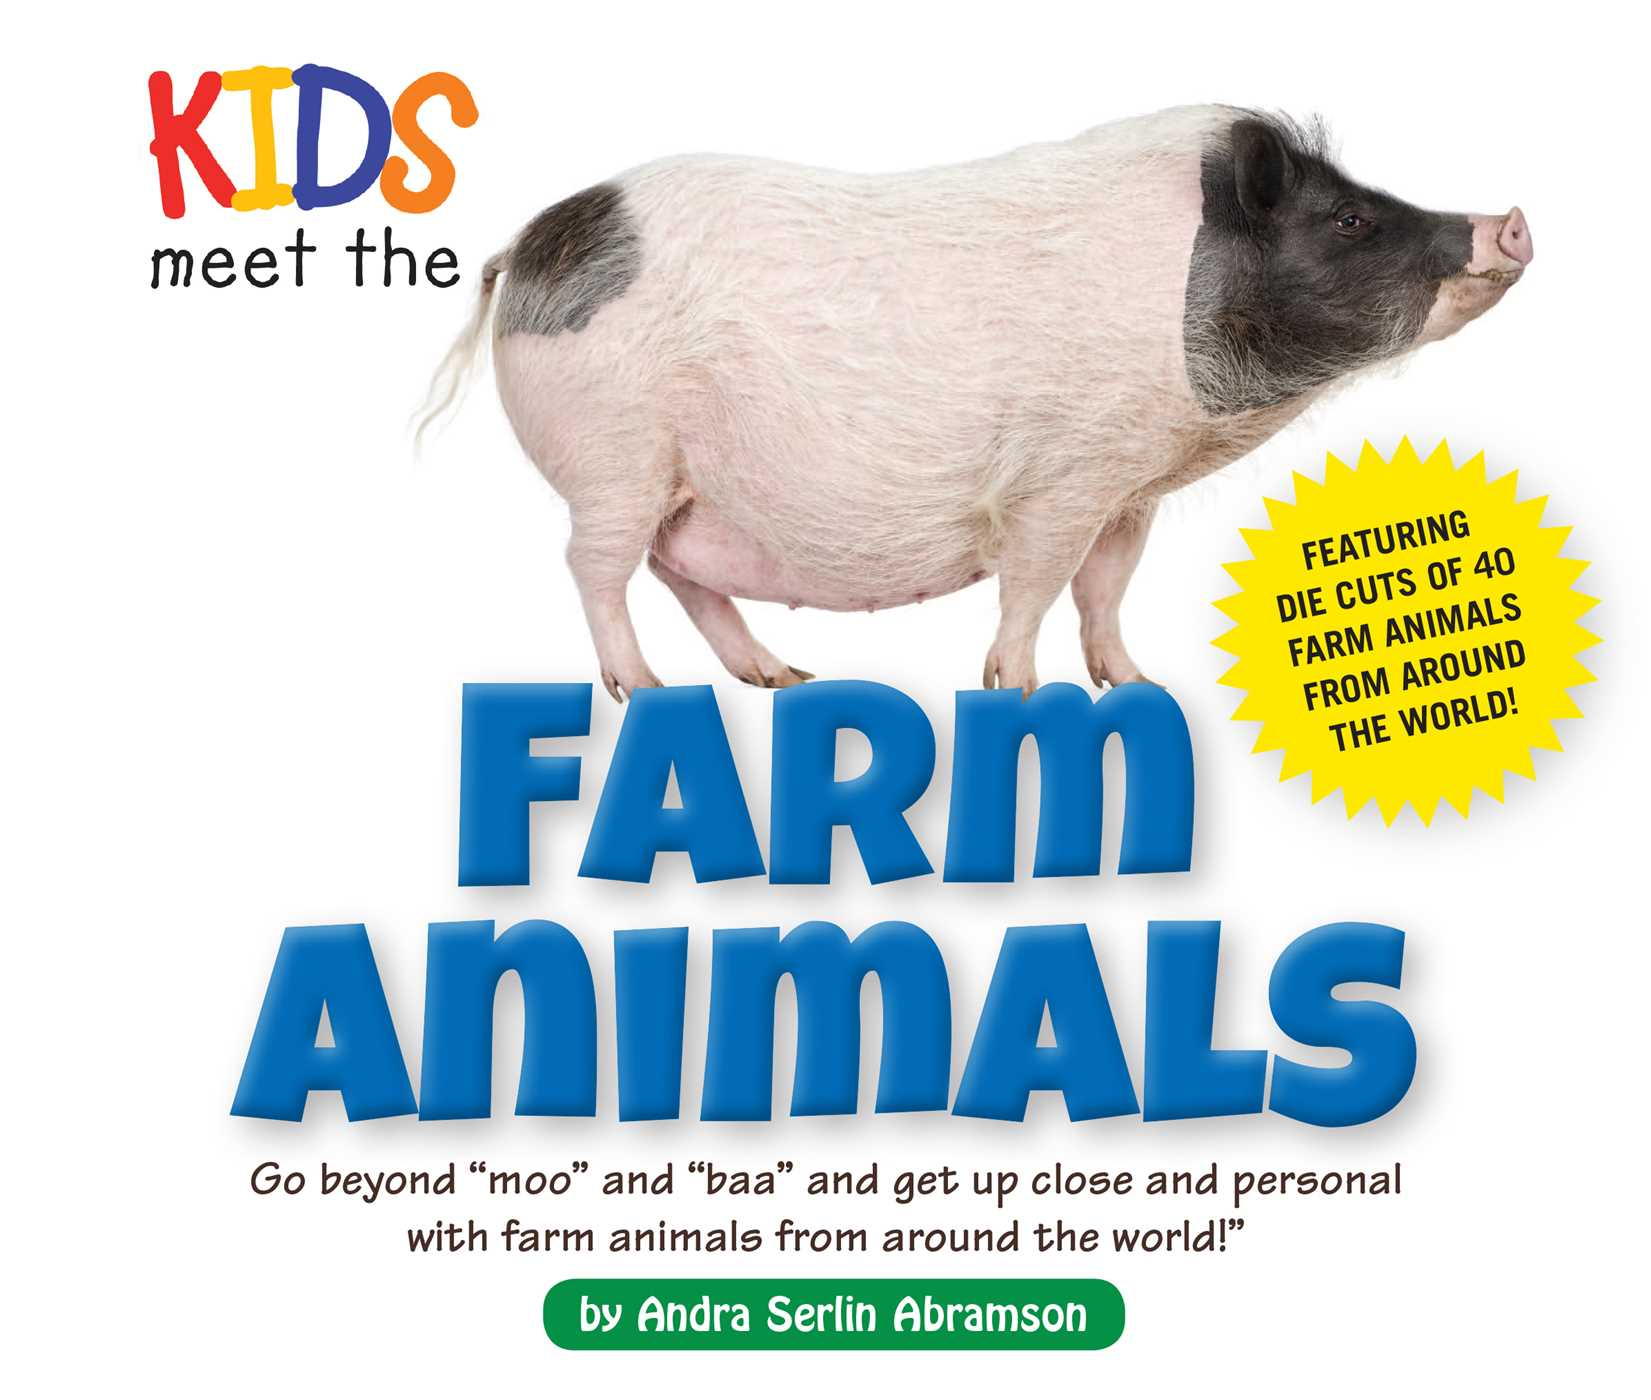 Kids-meet-the-farm-animals-9781604335026_hr